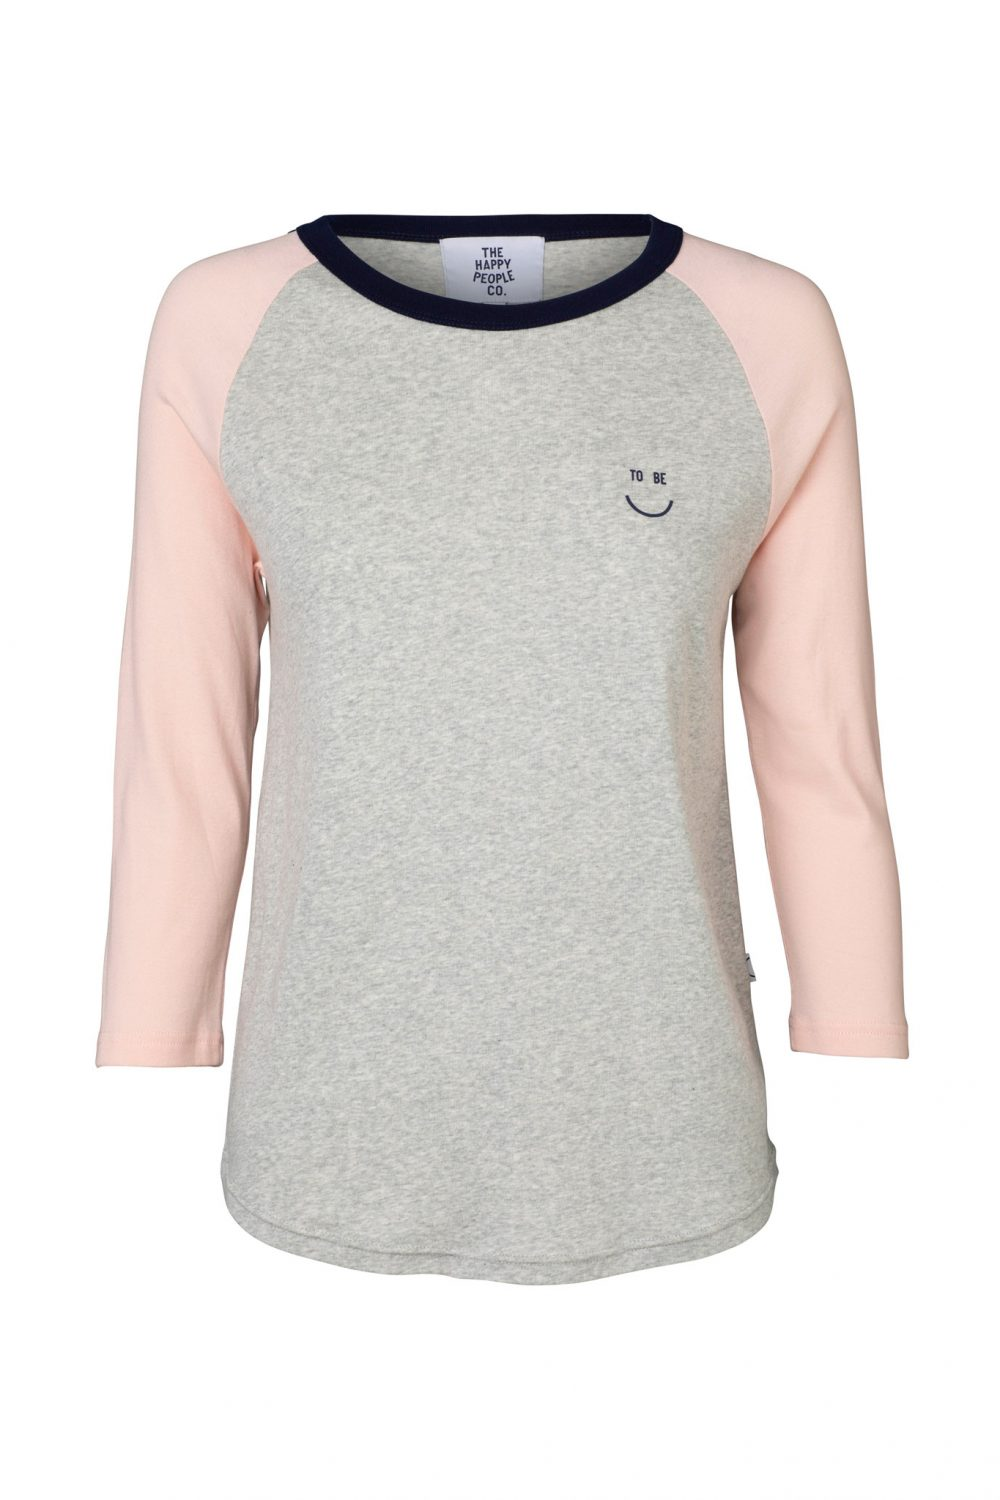 Happy Raglan Top Grey Marle